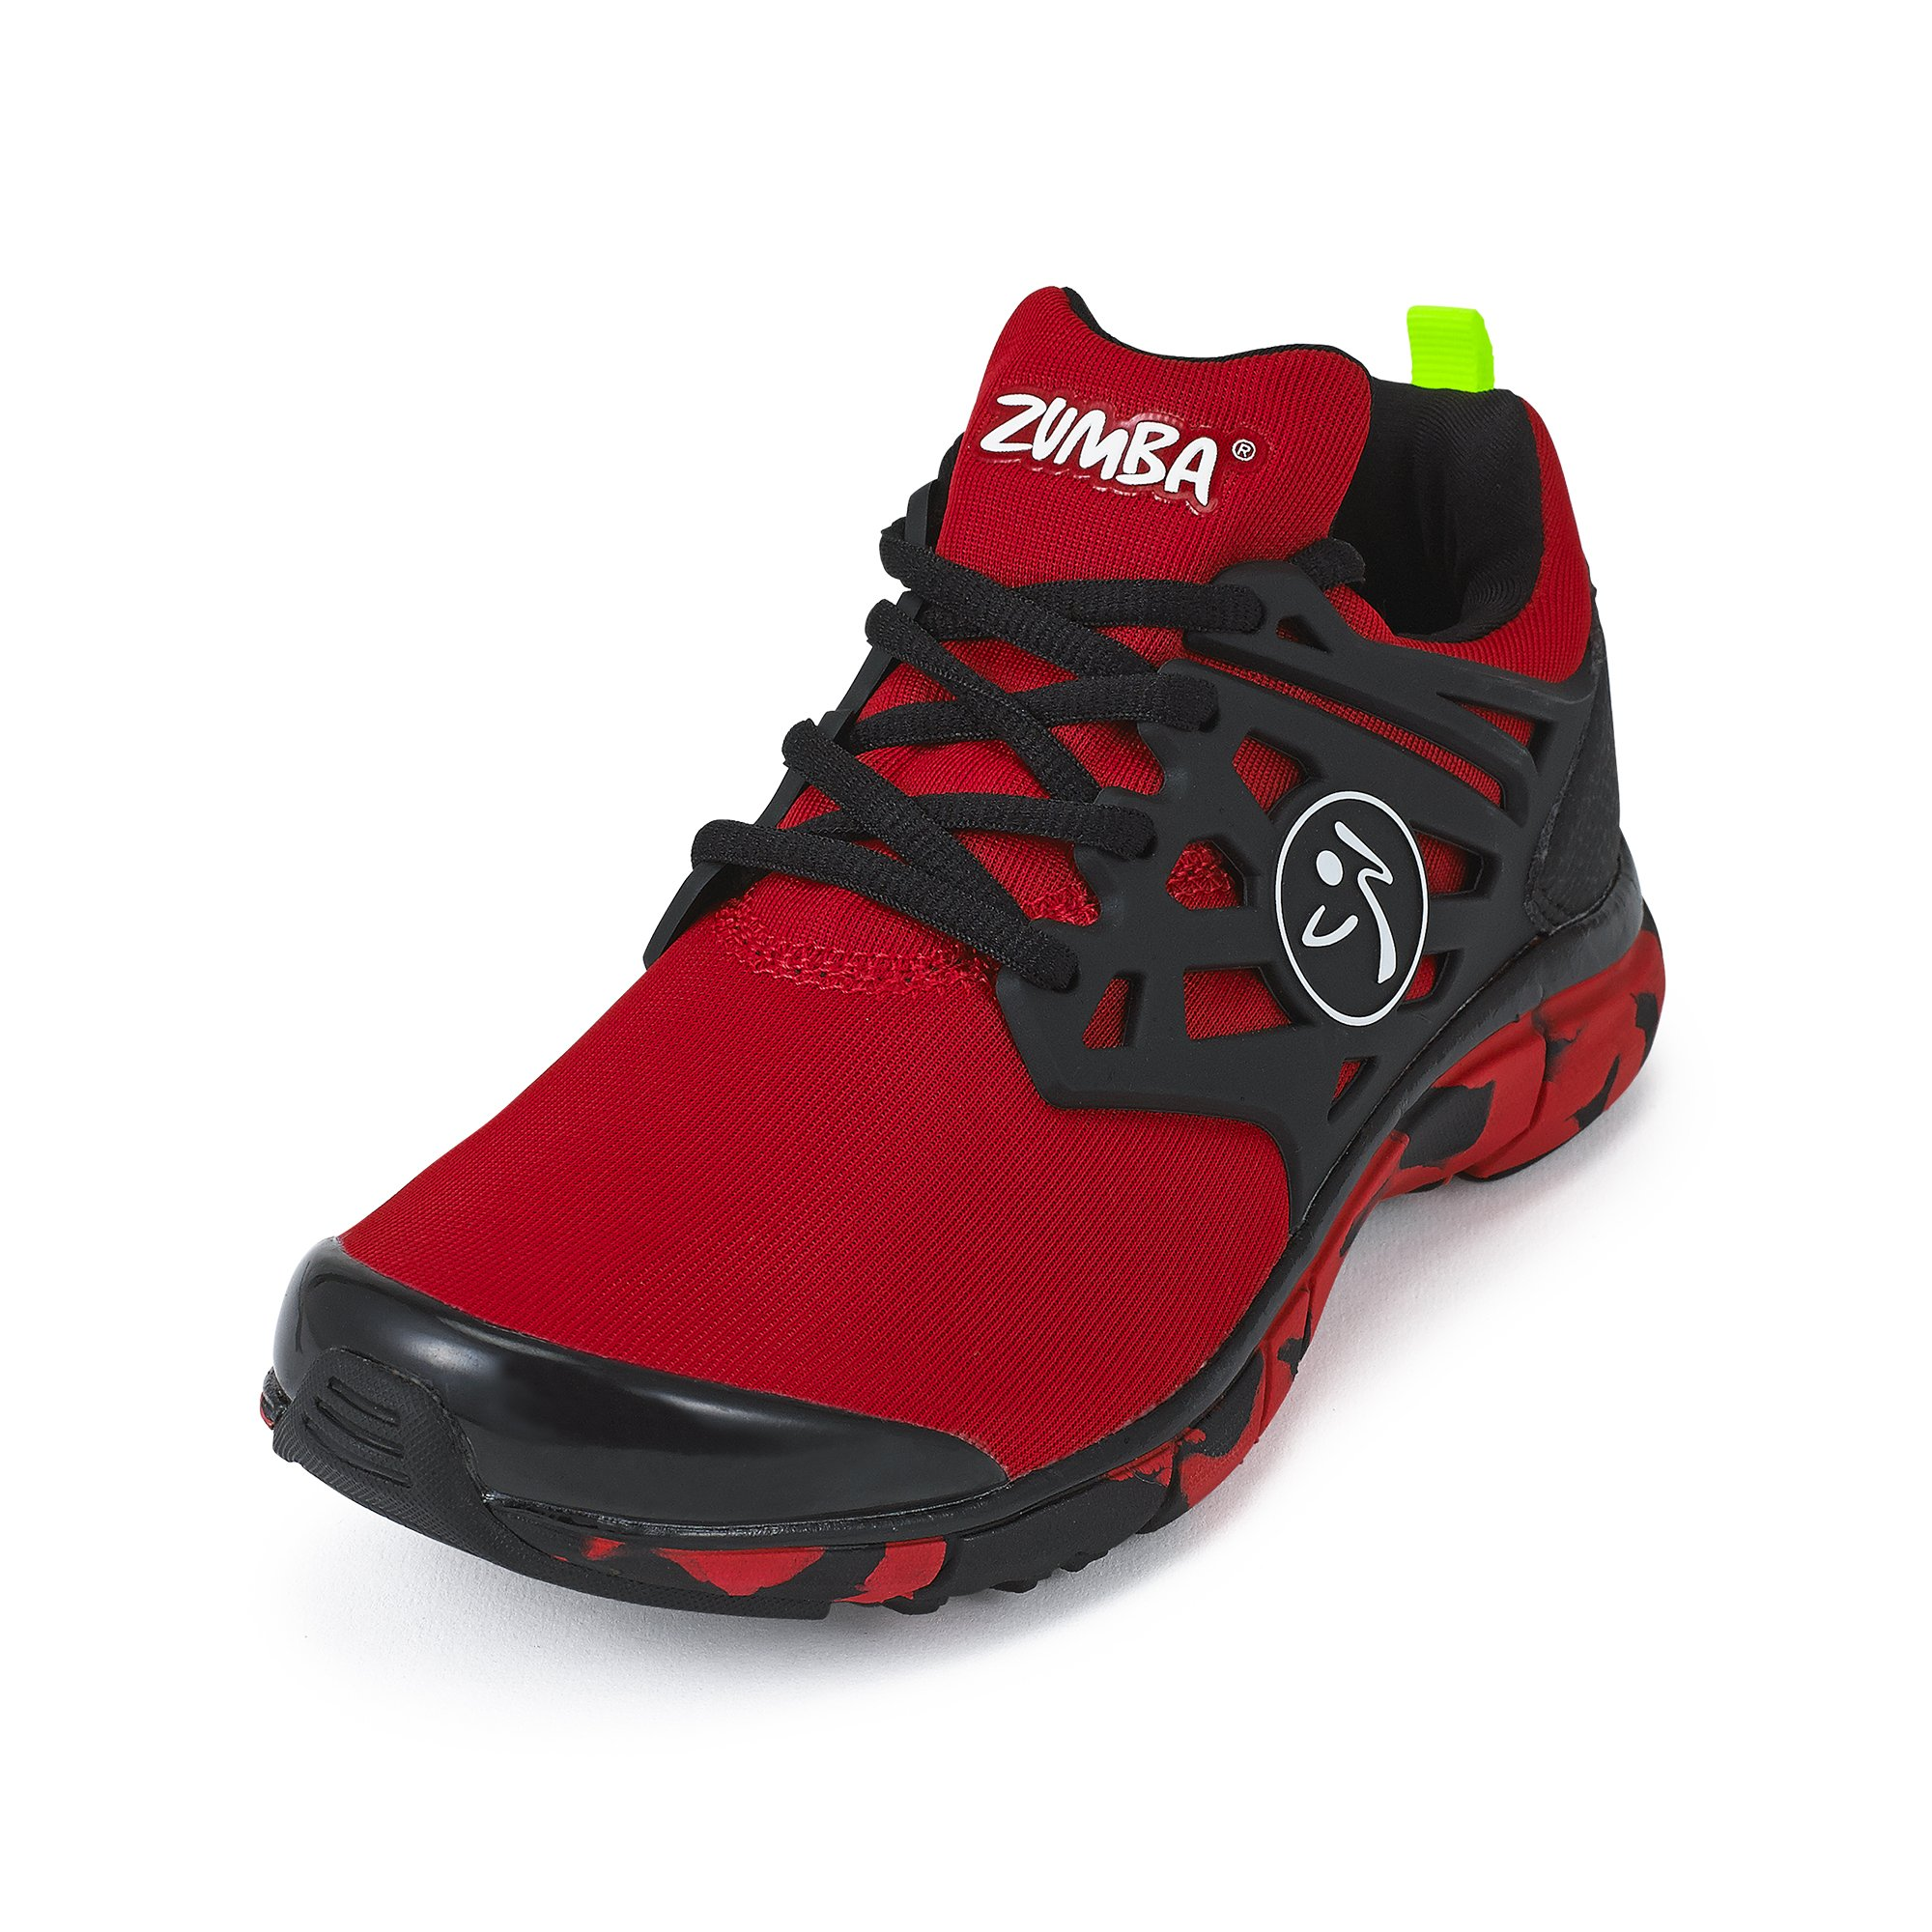 Zumba Women's Athletic Dance Workout Sneakers Fashion, Red, 9